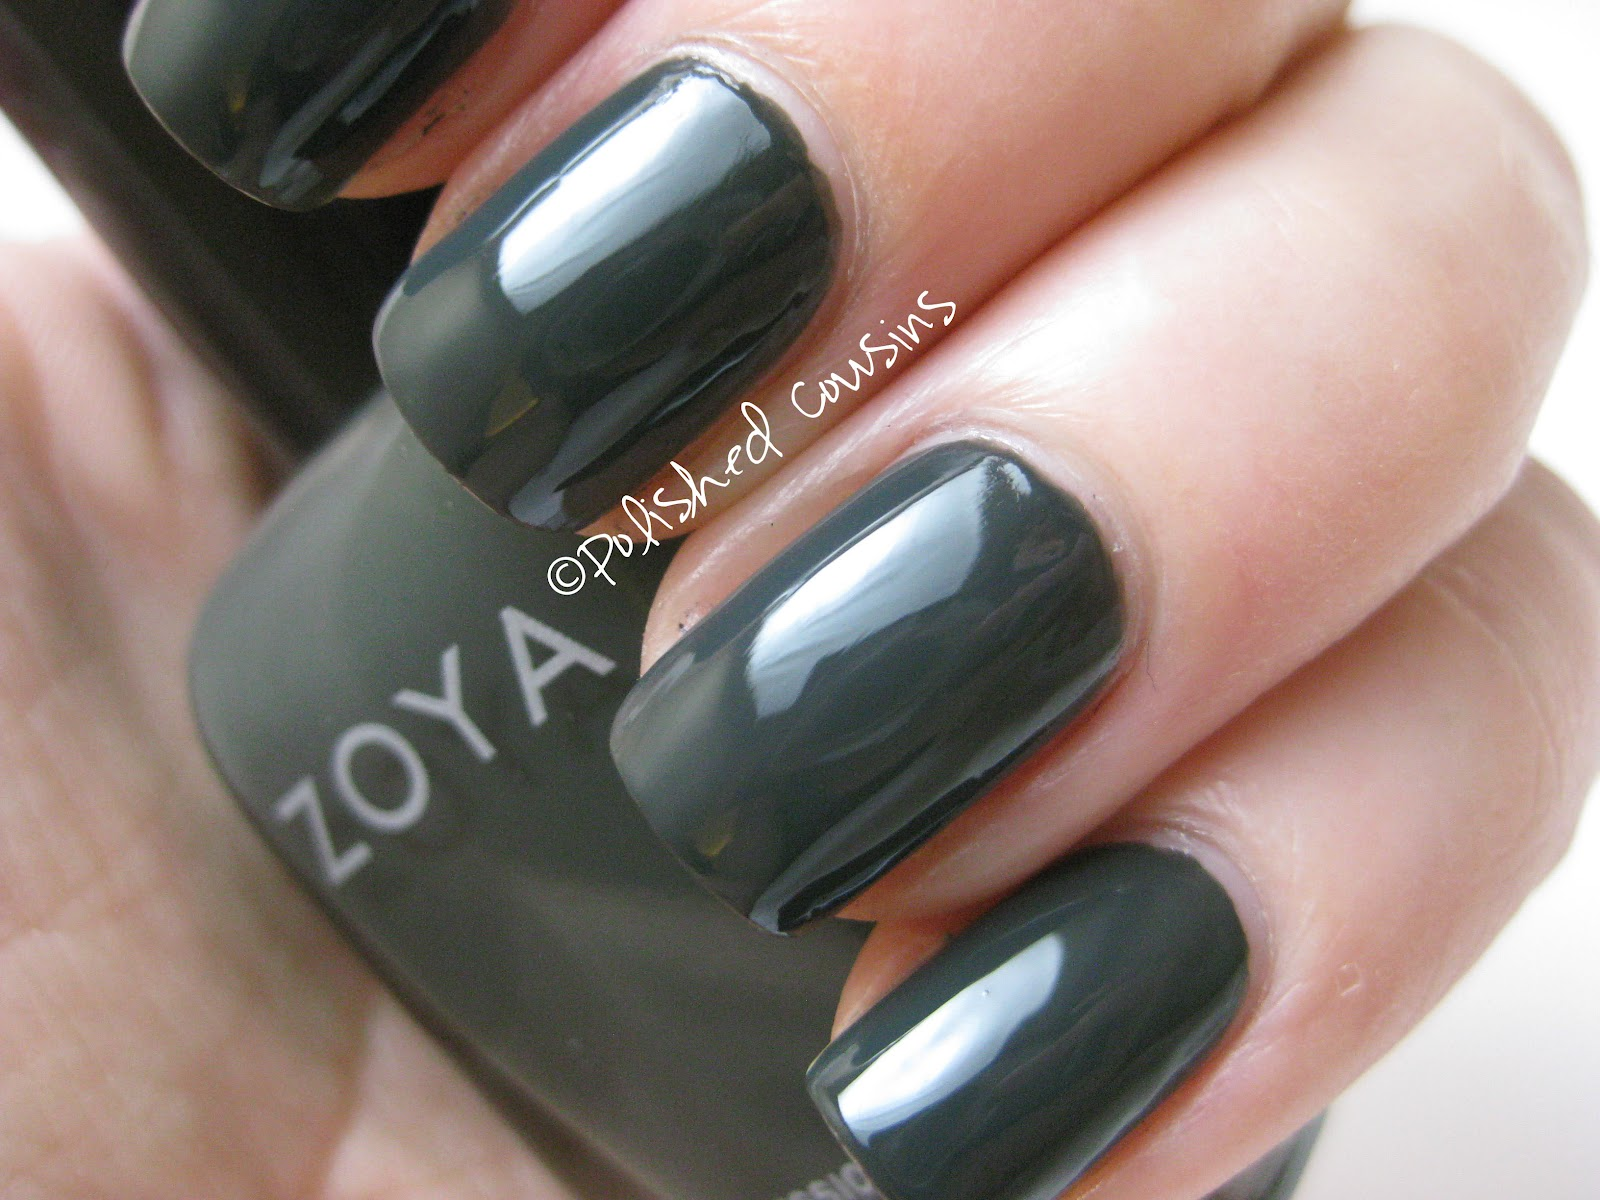 Polished Cousins: Zoya - Fall 2012 Designer Collection